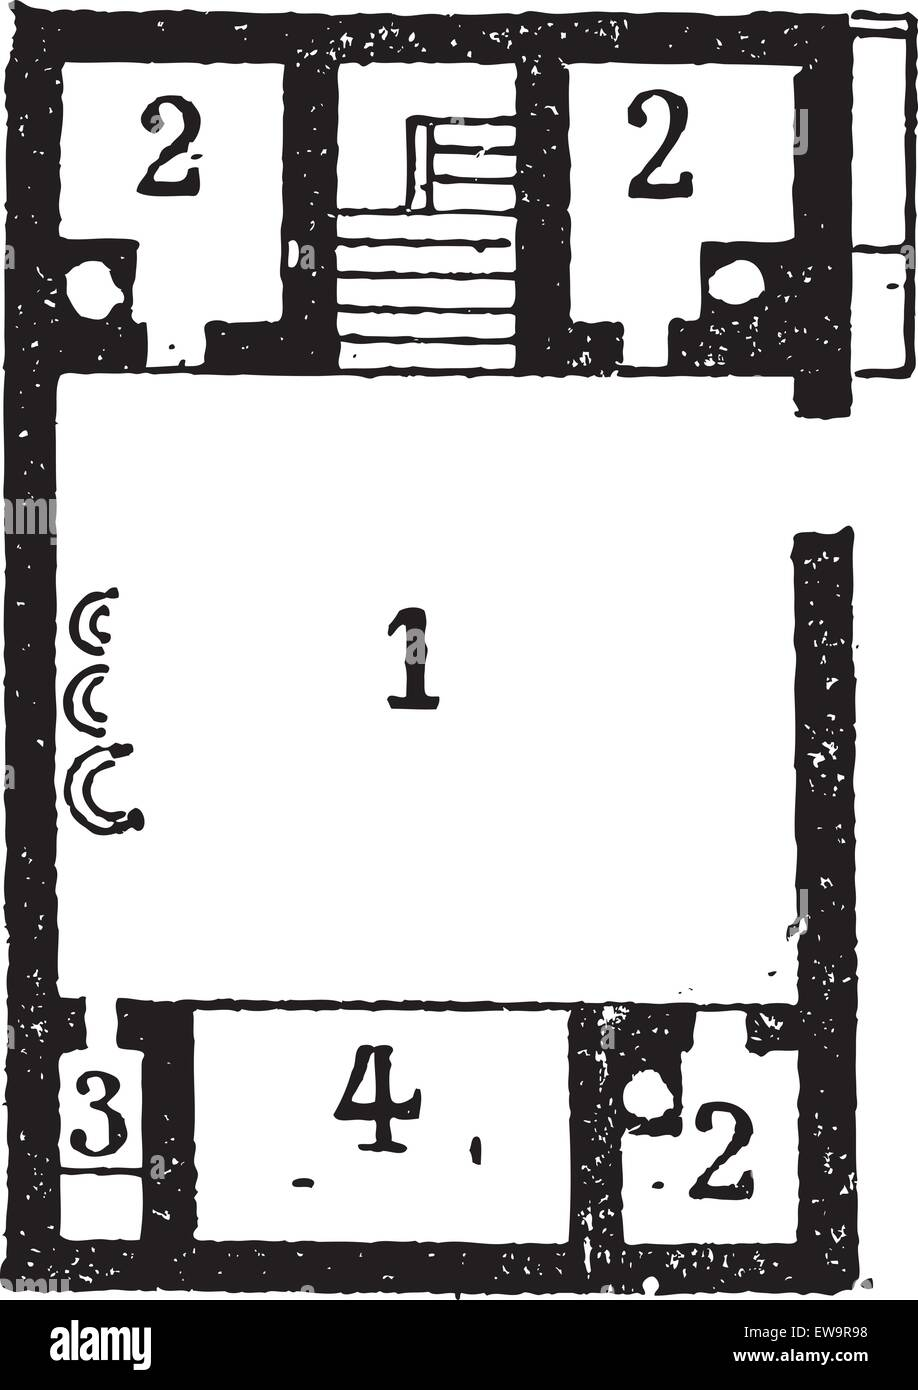 Floor Plan of an Egyptian House, showing (1) courtyard, (2) rooms, (3) latrine, and a (4) shed, vintage engraved - Stock Vector